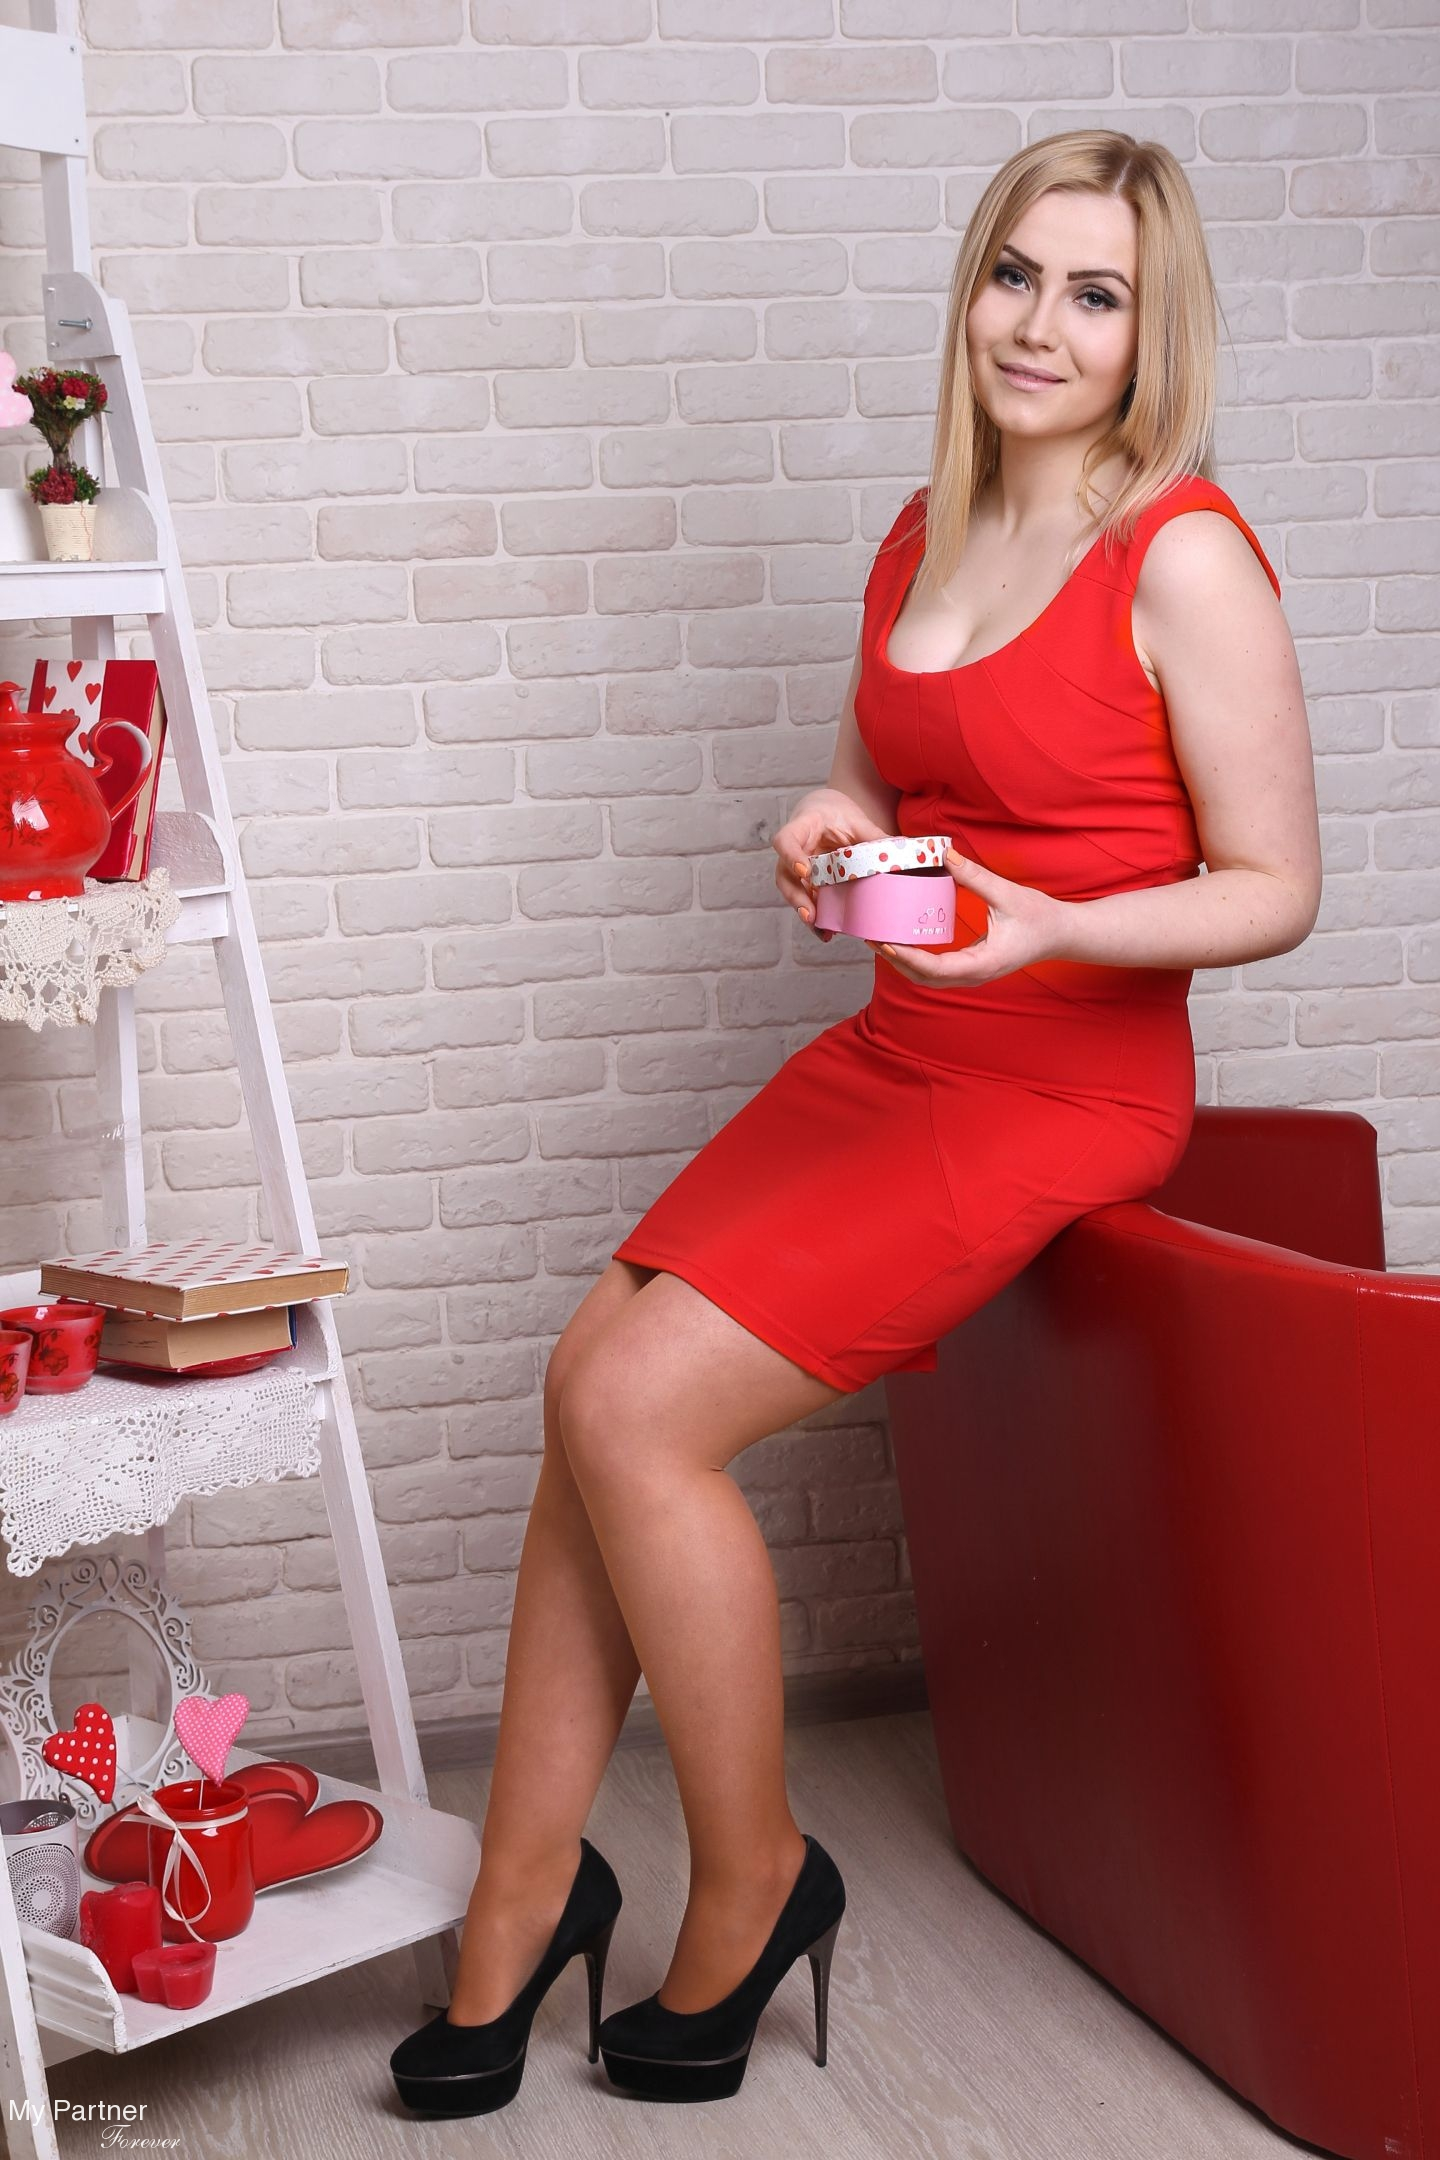 Match dating ukraine